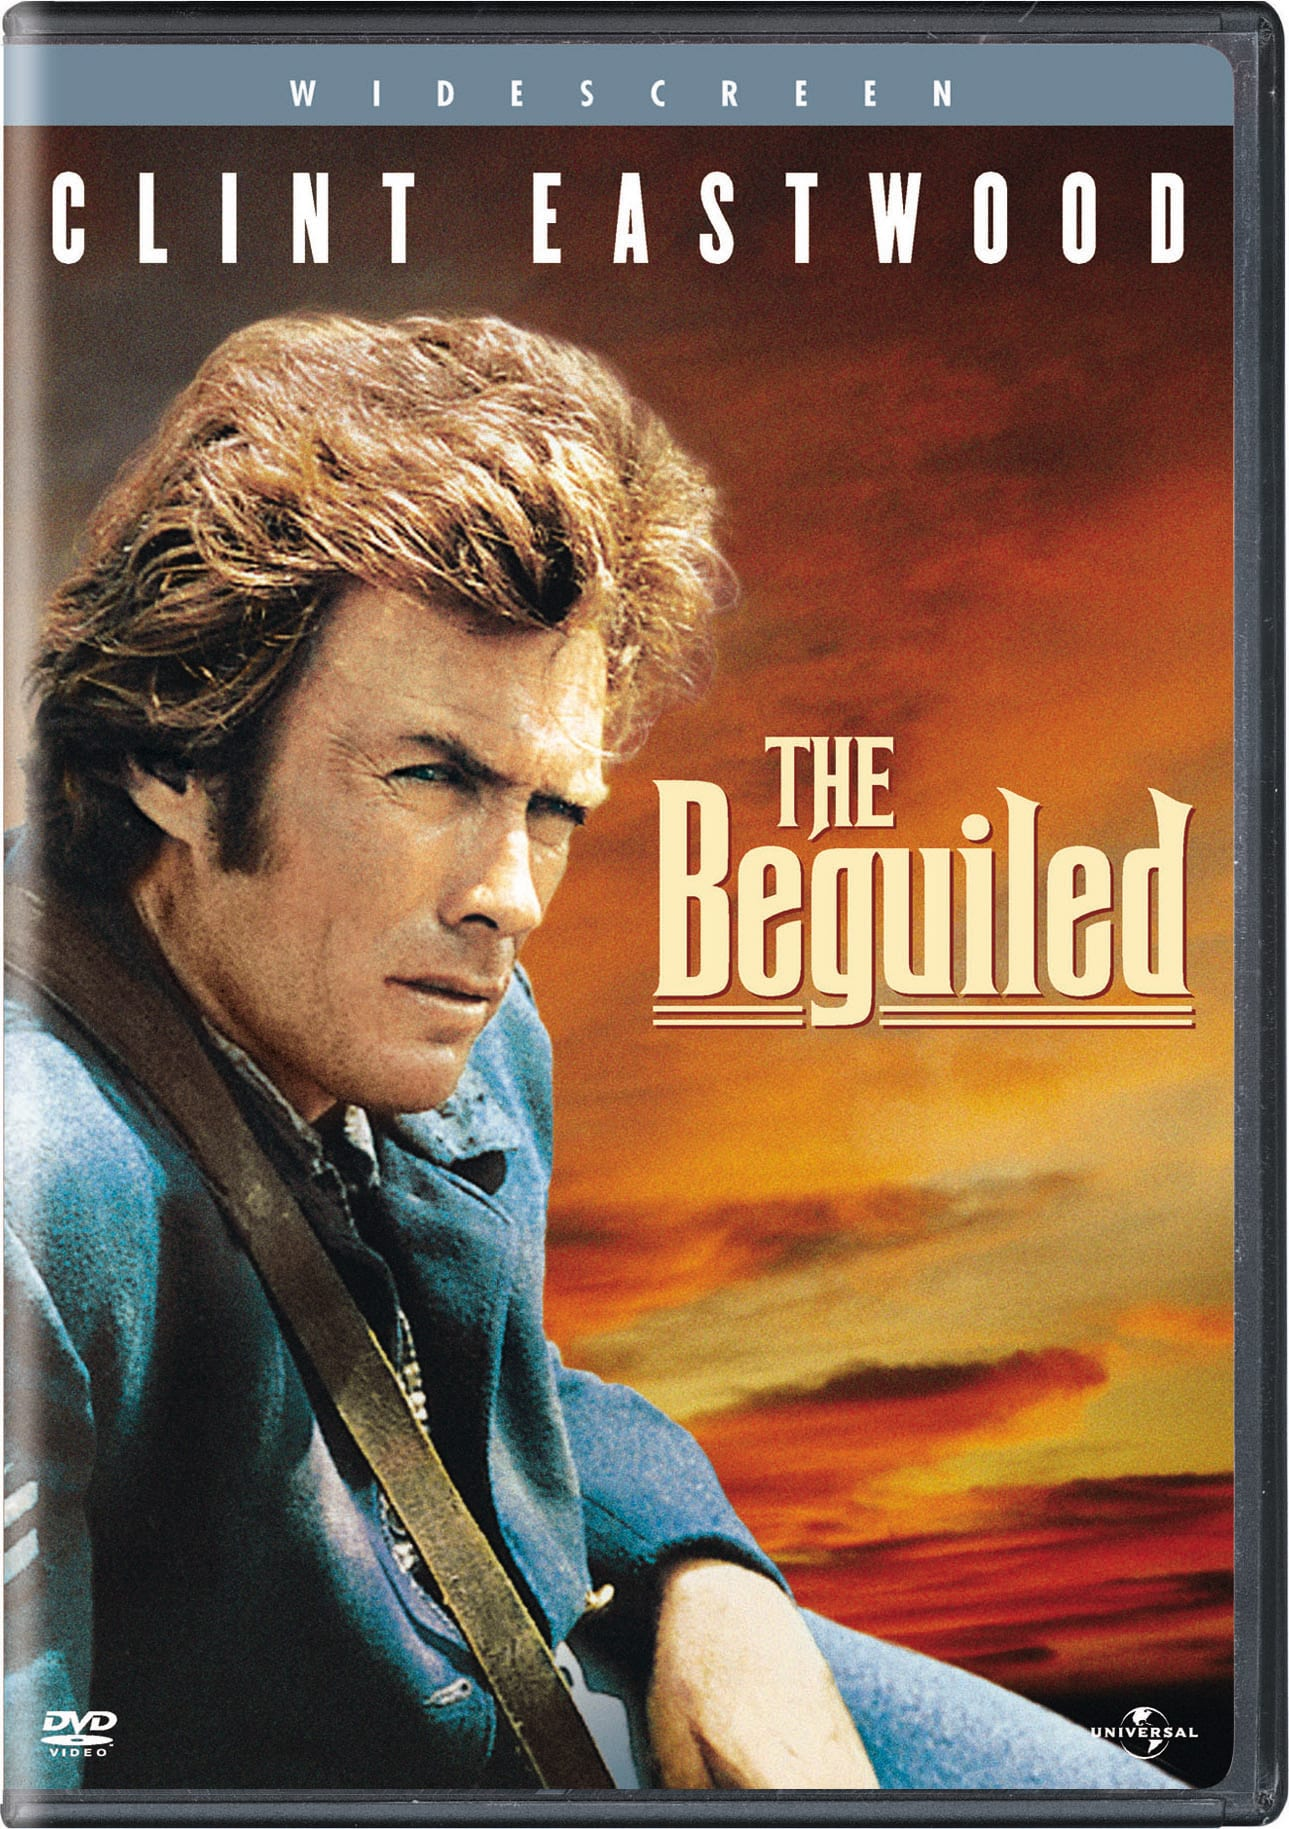 The Beguiled (1971) (Widescreen) [DVD]